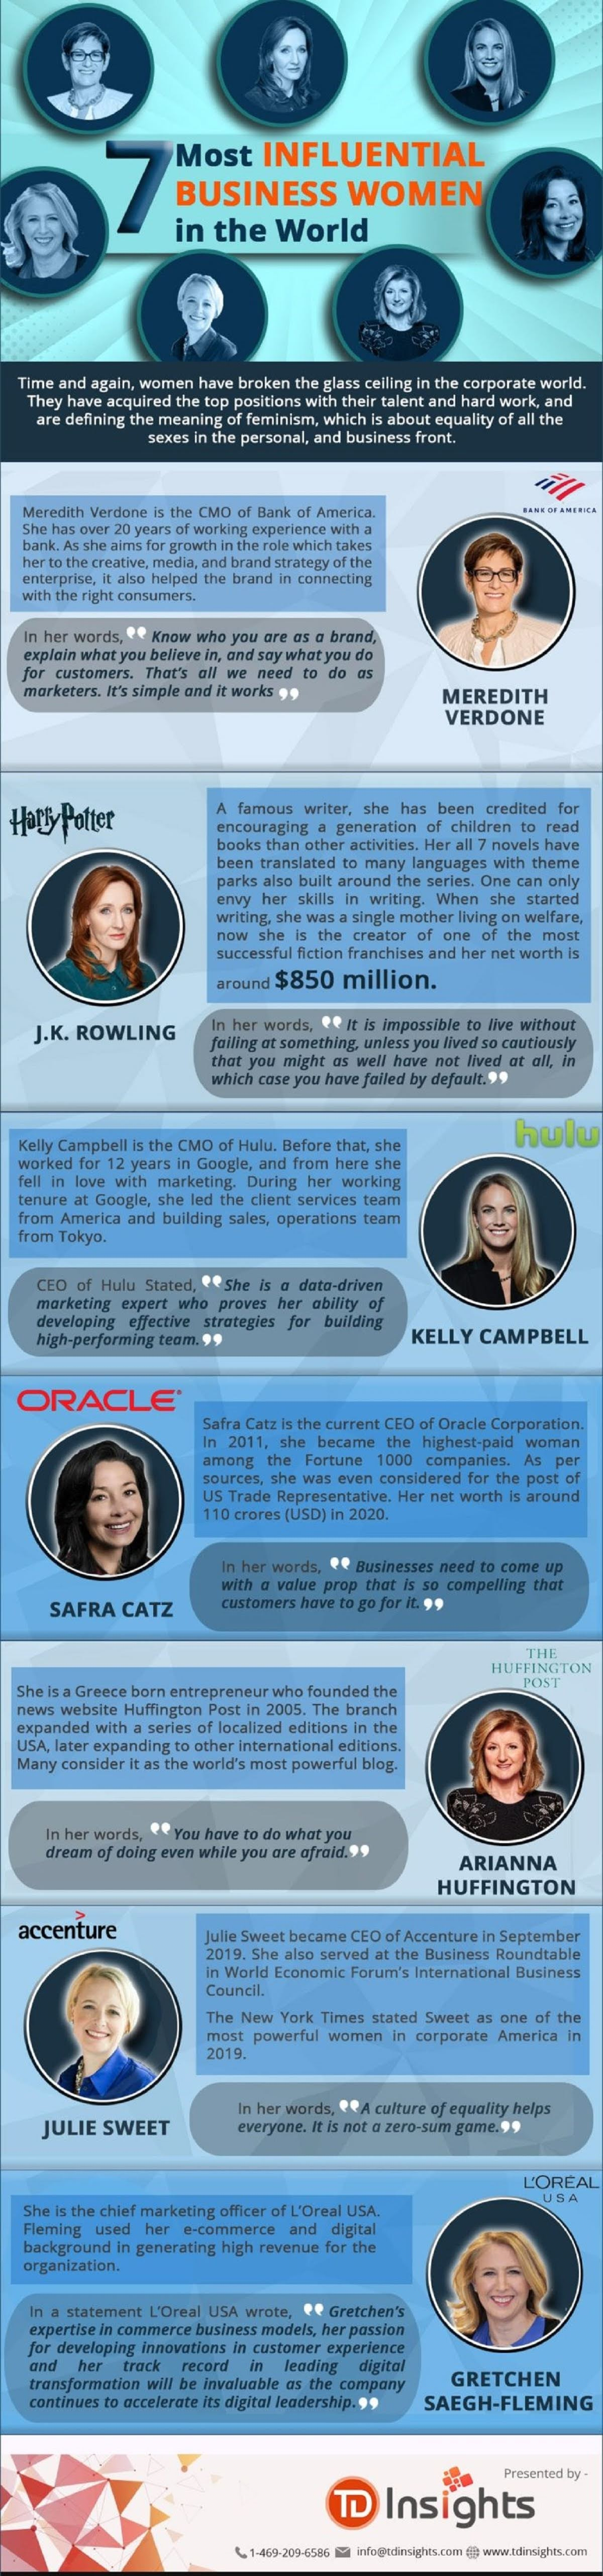 7-most-influential-business-women-in-the-world-infographic